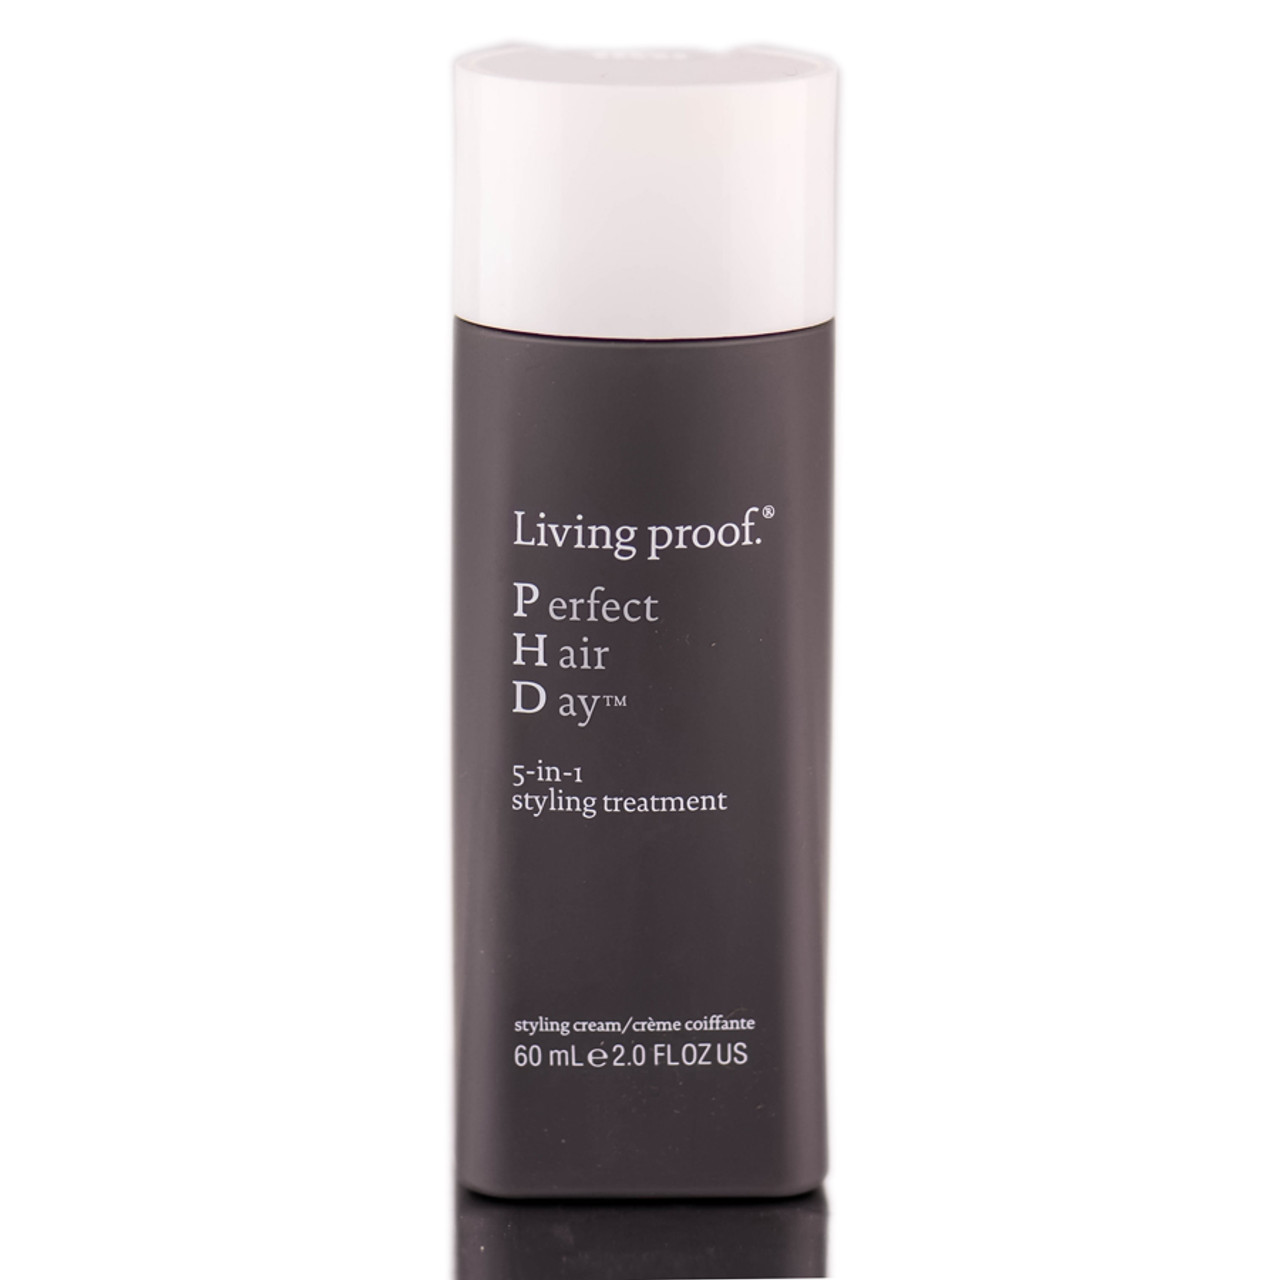 Living Proof PHD Perfect Hair Day 5 In 1 Styling Treatment